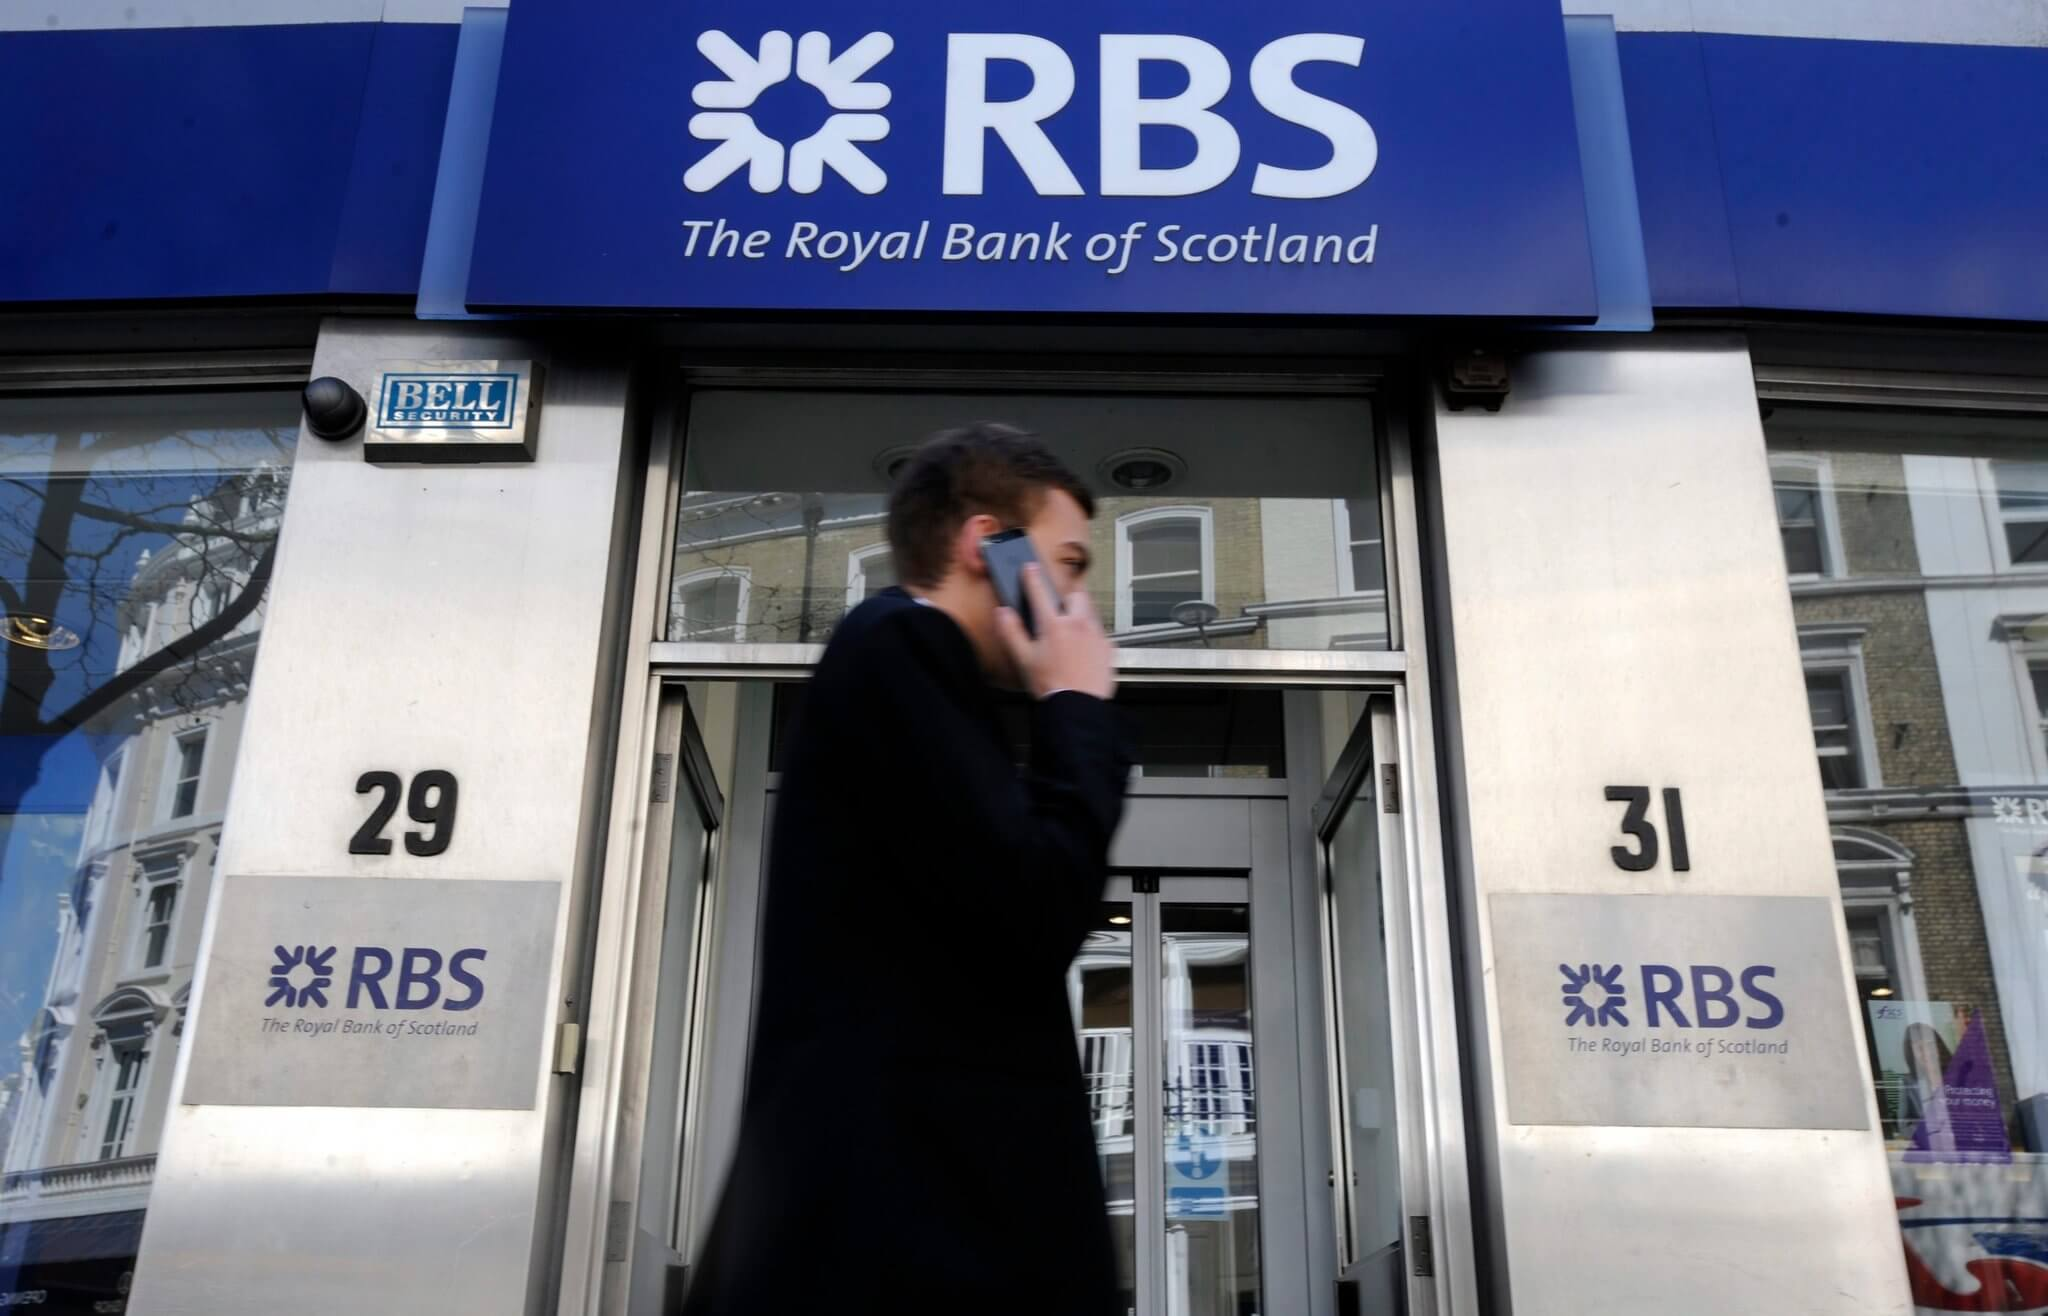 Royal bank of scotland 0345 303 3040 royal bank of scotland 0844 385 1259 reheart Images